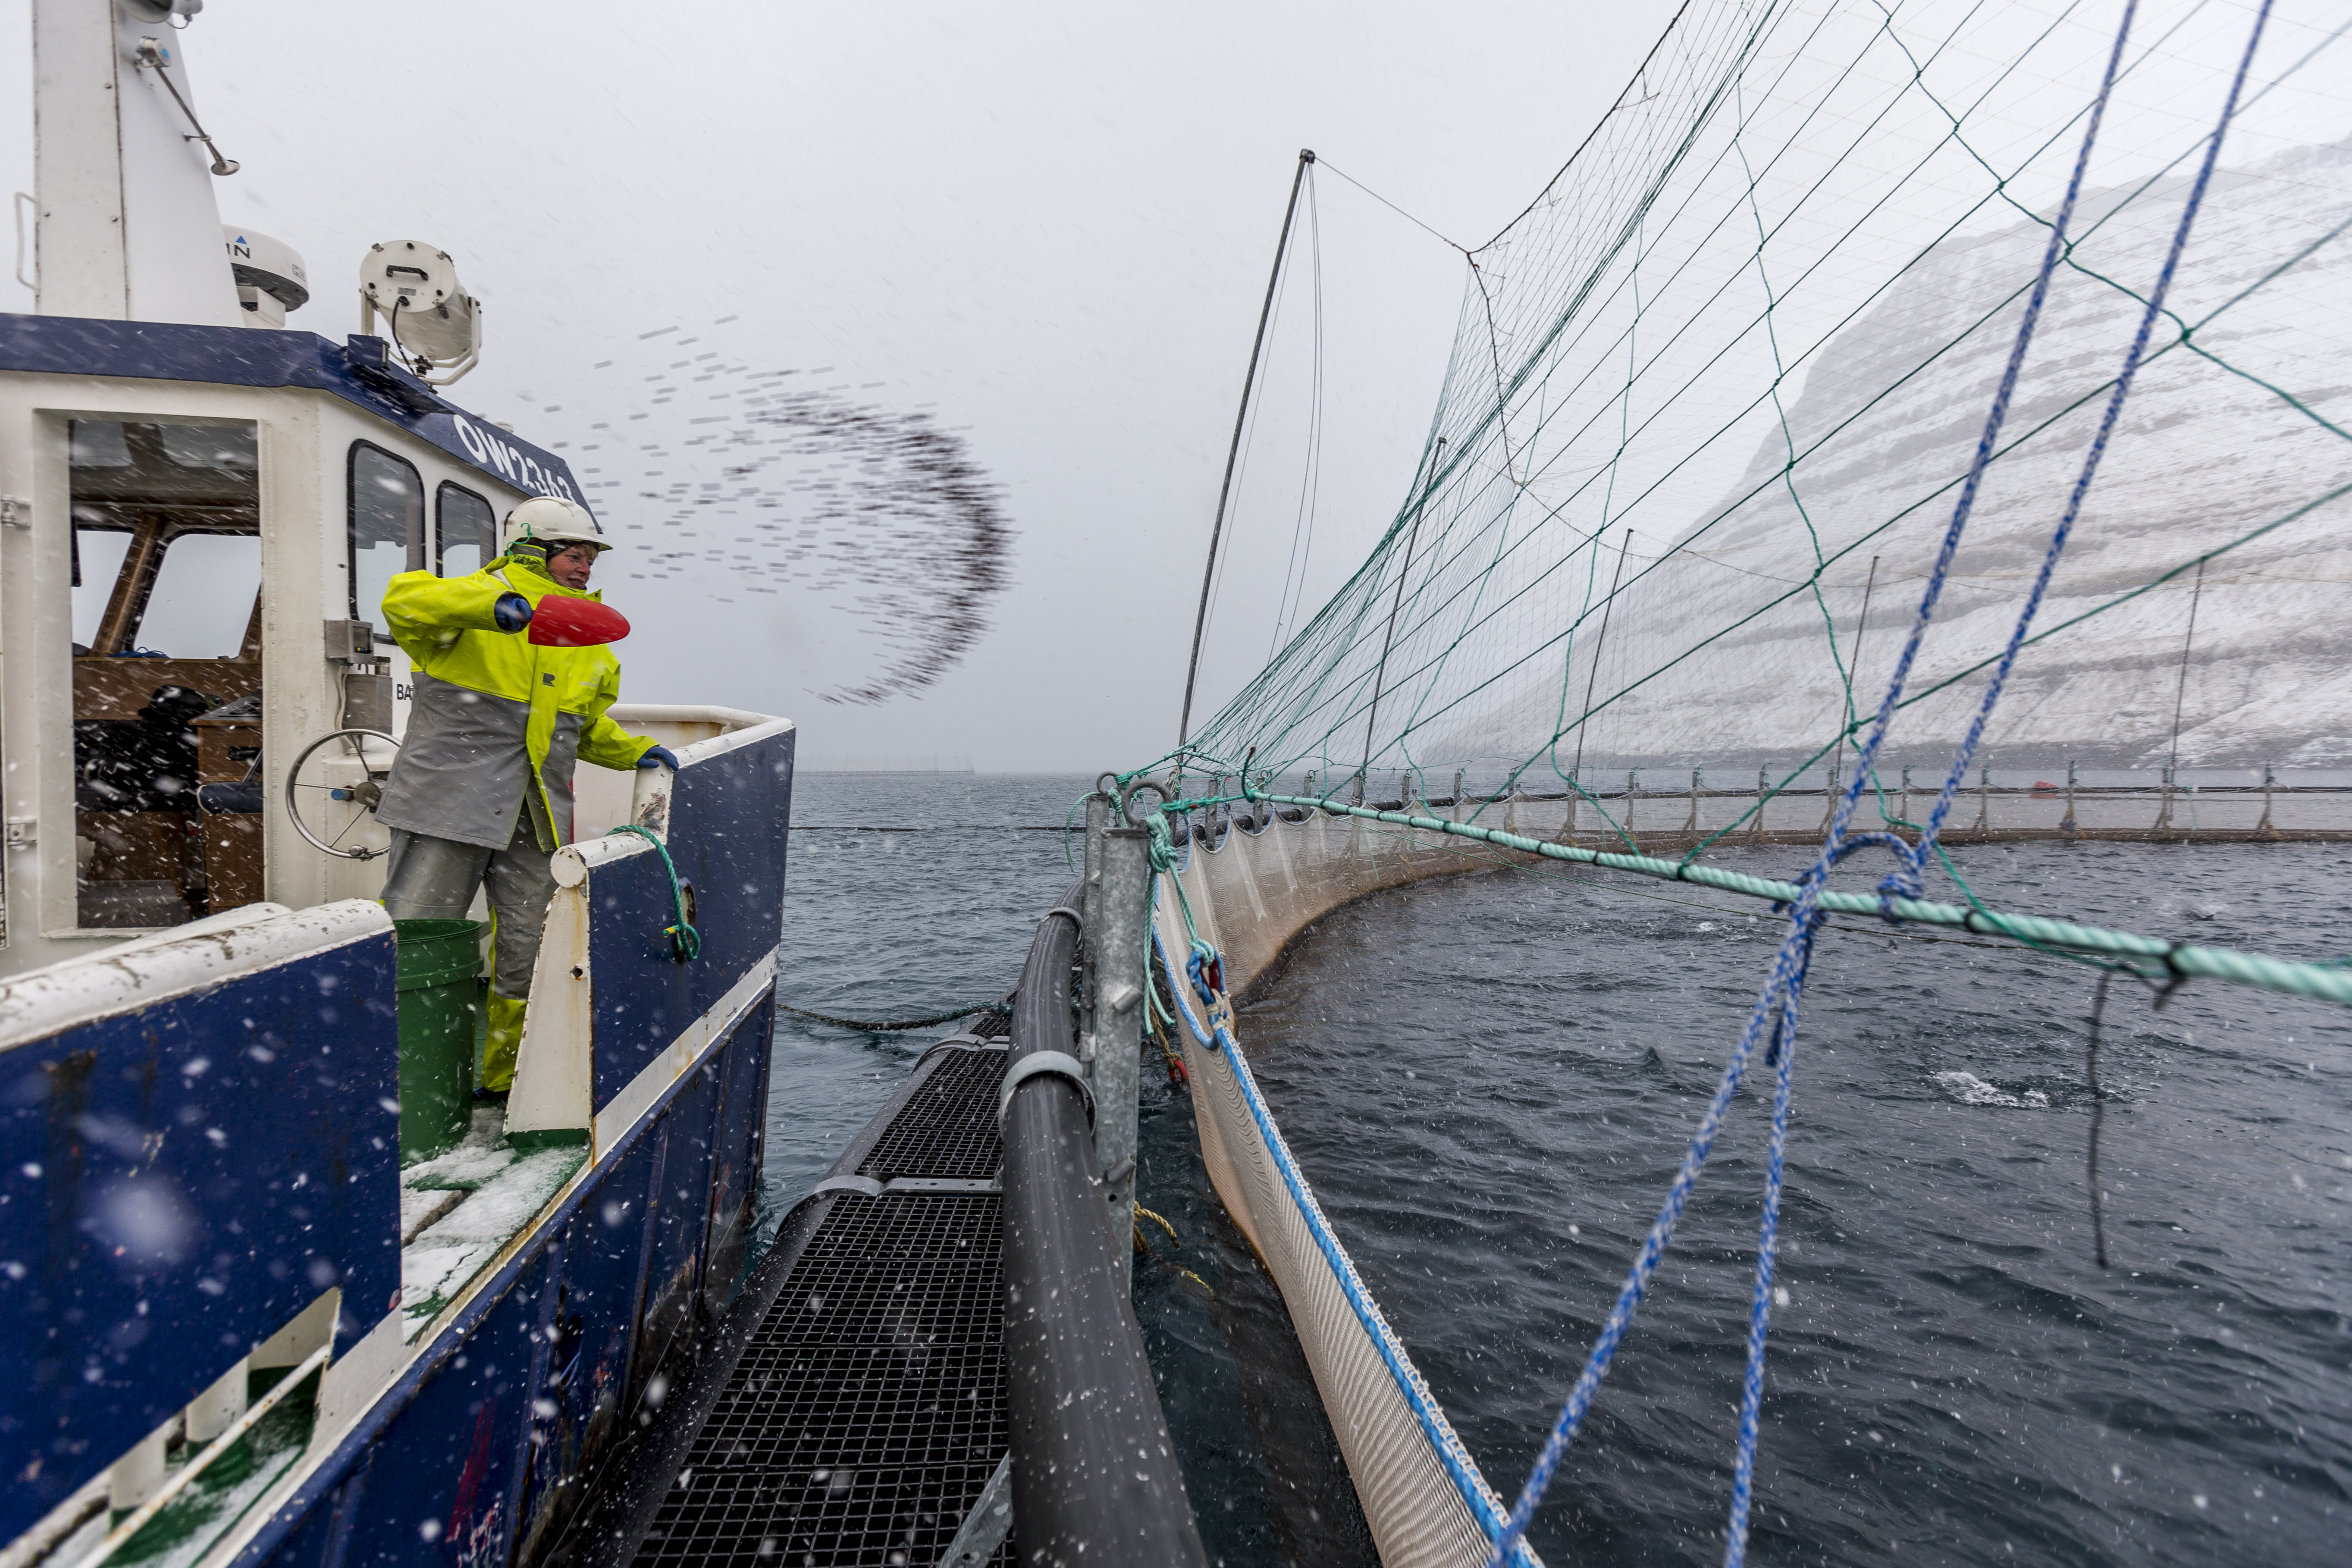 Protecting its booming fish exports, the Faroe Islands